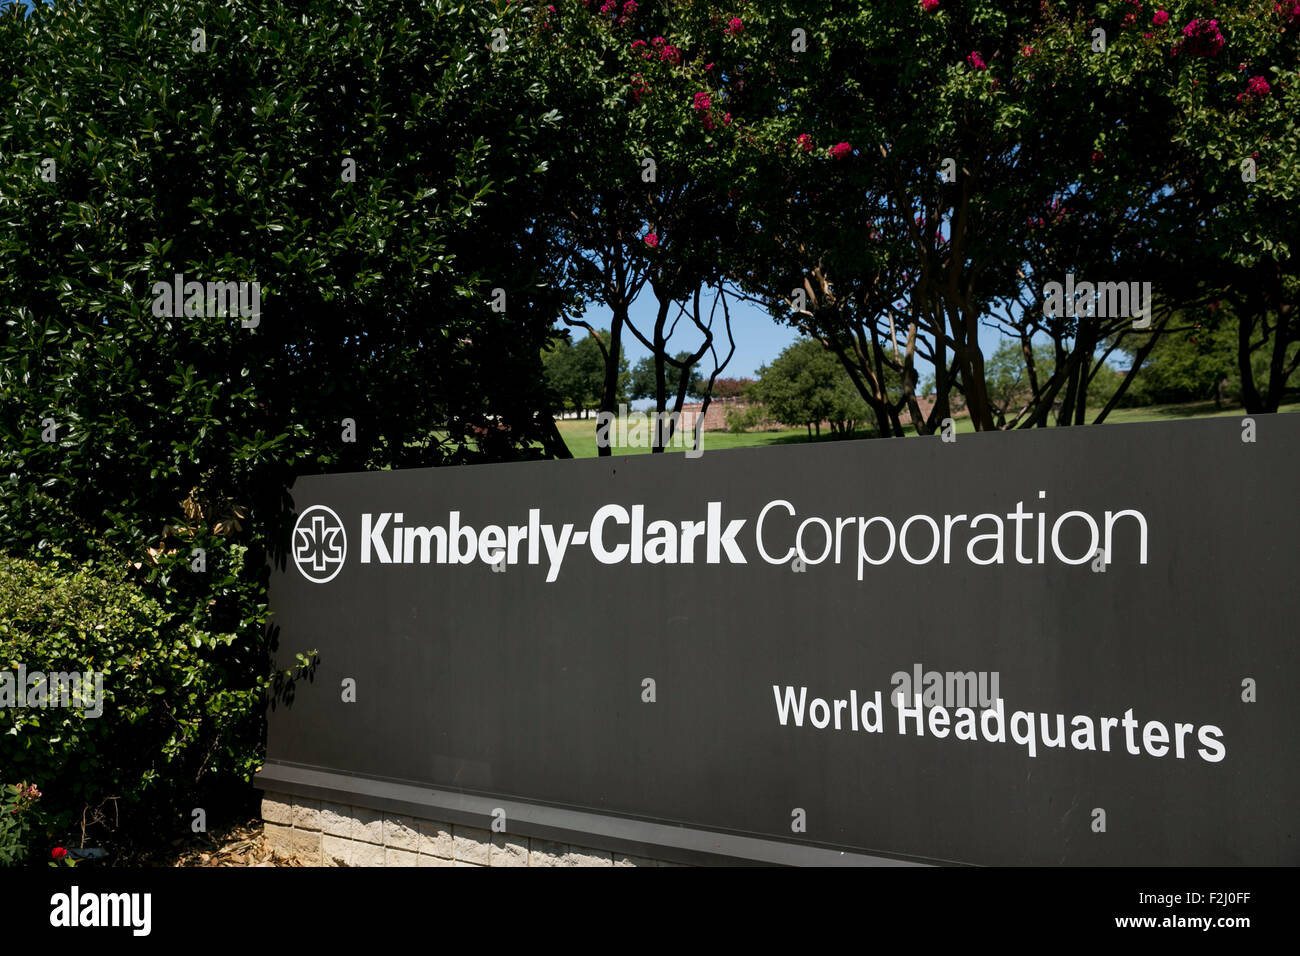 A logo sign outside of the headquarters of the Kimberly-Clark Corporation in Irving, Texas on September 13, 2015. Stock Photo